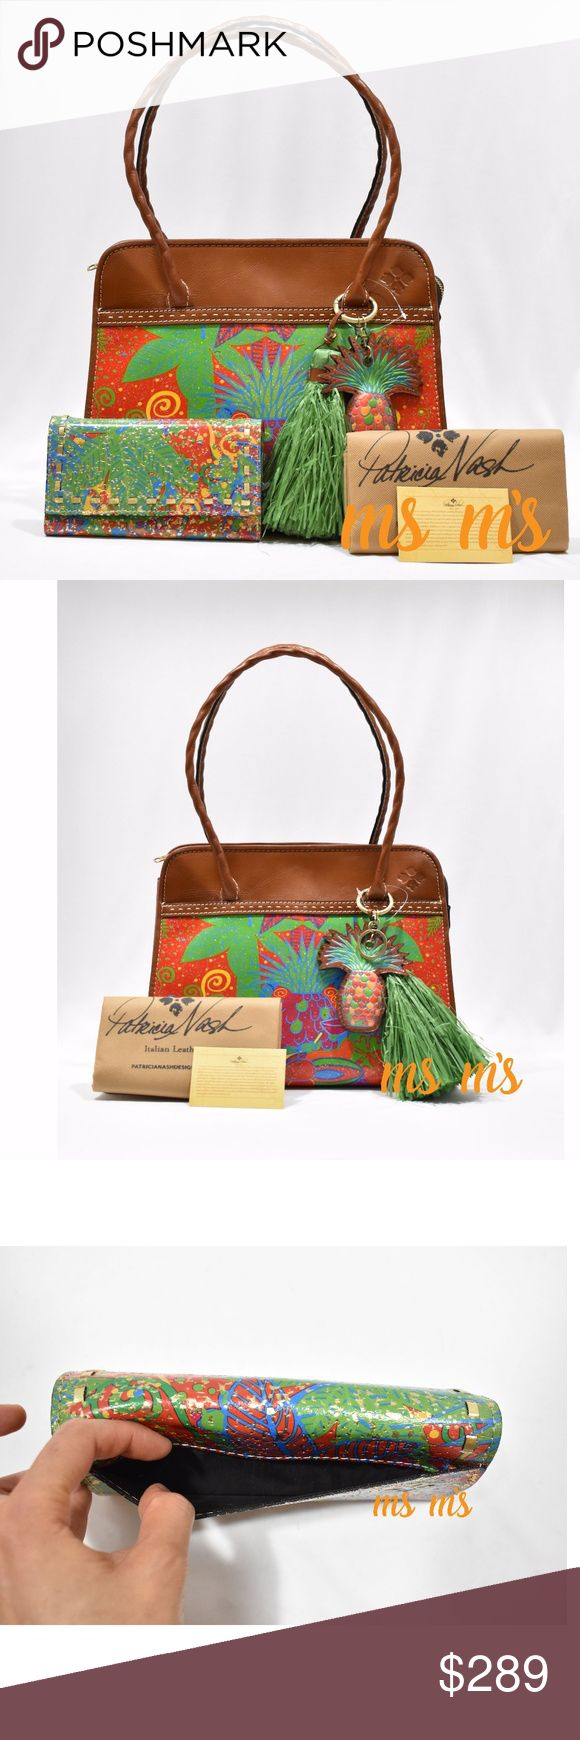 """NWT Patricia Nash Satchel Leather w match wallet Tote detail: new with tag Medium sized bag; 13-1/2""""W x 10-1/2""""H x 6""""D 9-1/2""""L double handles Zip closure Signature antique brass-tone exterior hardware, heavy handcrafted stitching, burned edge finish, deep embossed grape leaf logo, tassel accent & front & back large magnetic snap pockets 1 interior zip pocket, 2 slip pockets & 2 slip compartments Leather Wallet detail: NEW WITHOUT TAG, bought it without tag Size Approx: 7.5""""L x 4.2""""H x 0.75""""W…"""